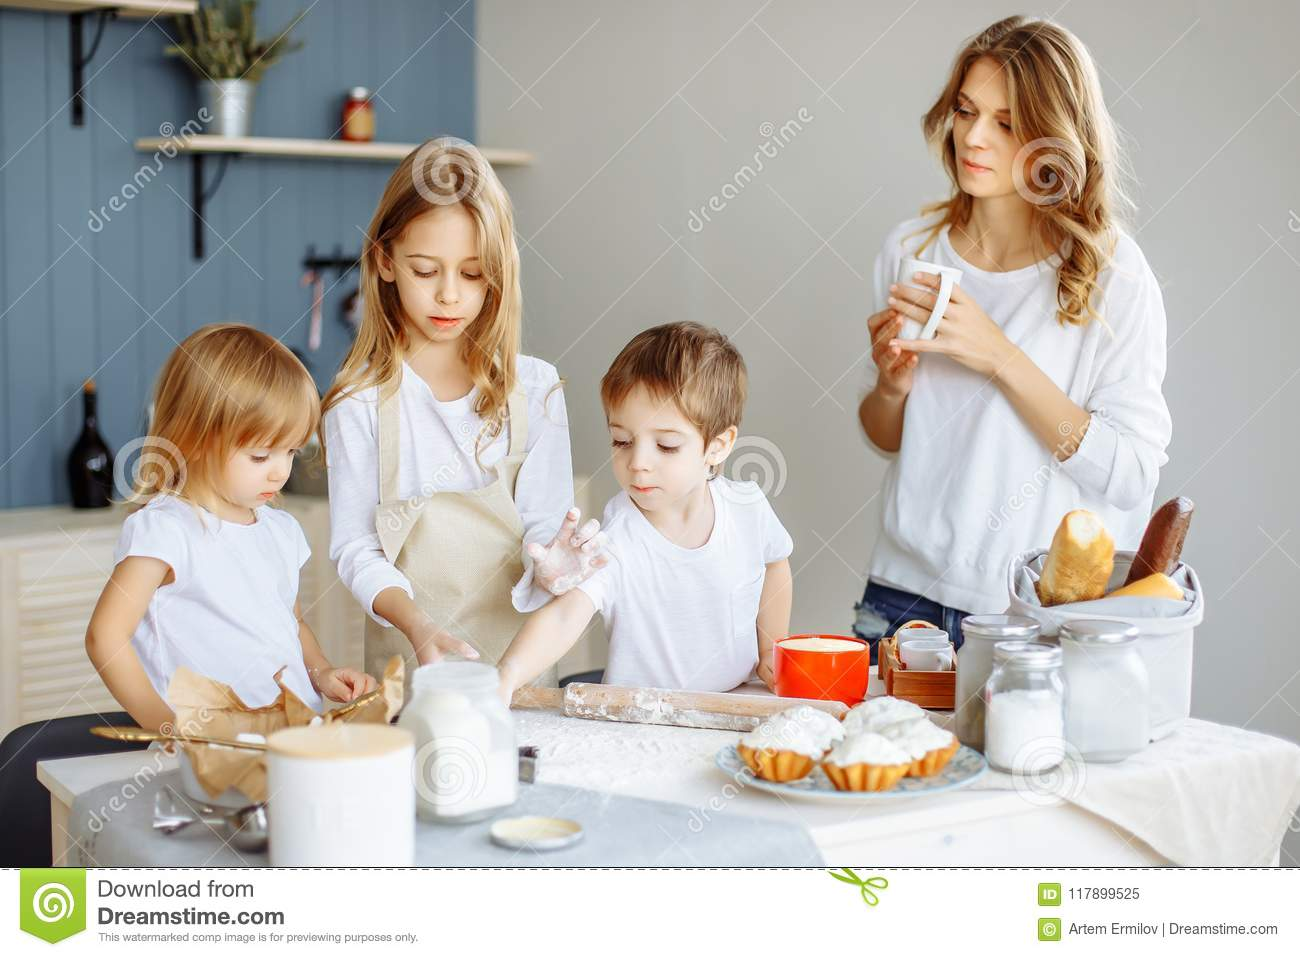 Happy family in the kitchen. Mother and her cute kids are cooking cookies.